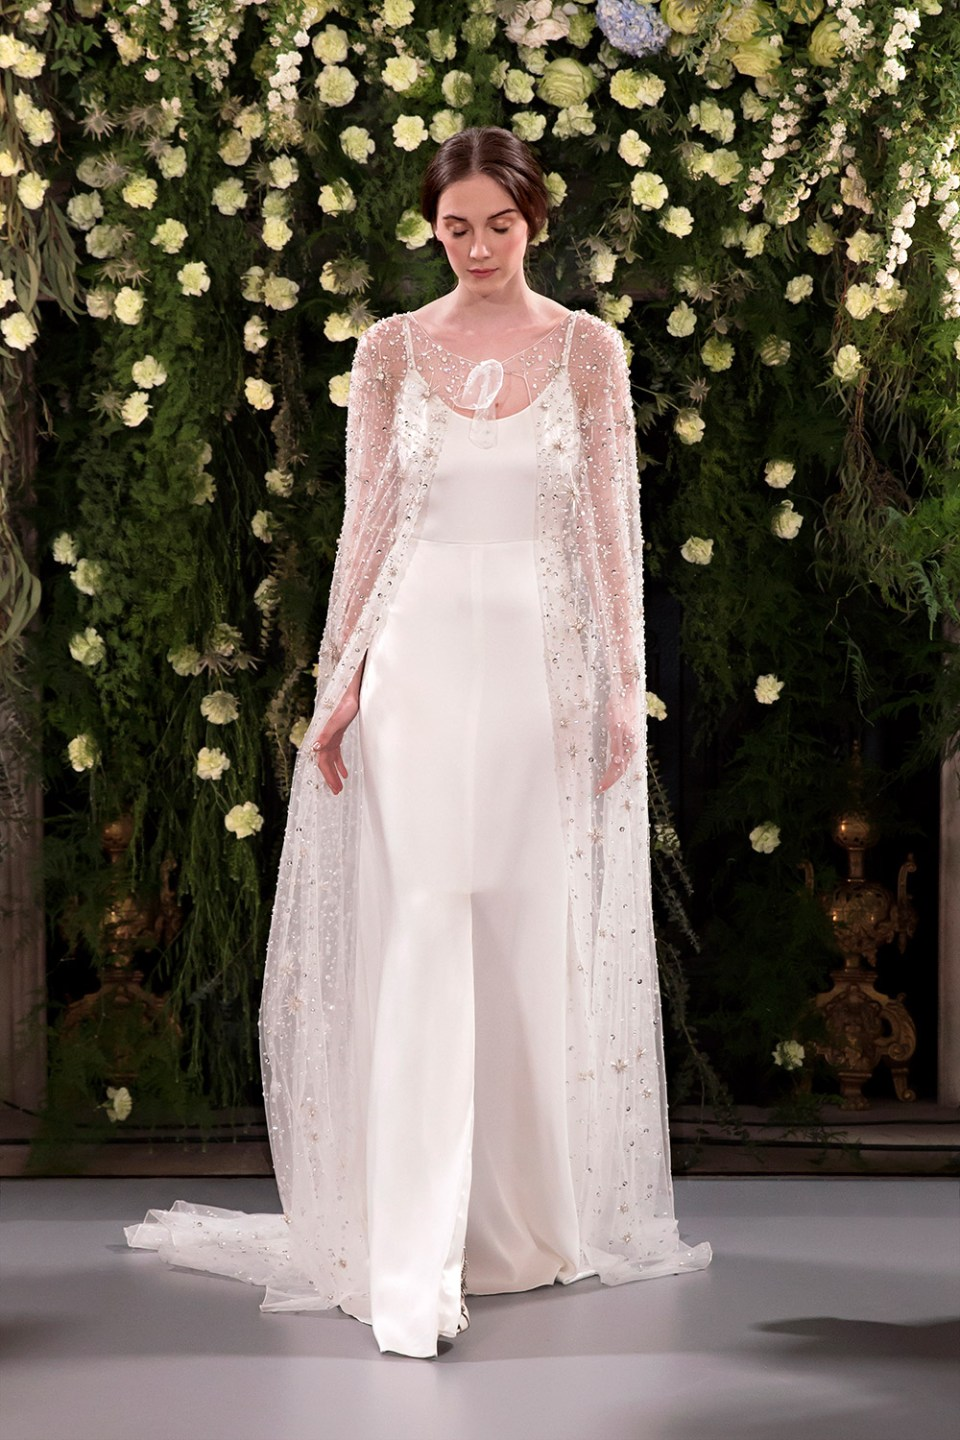 Acadia and Crystal – Jenny Packham 2019 Bridal Collection. www.theweddingnotebook.com